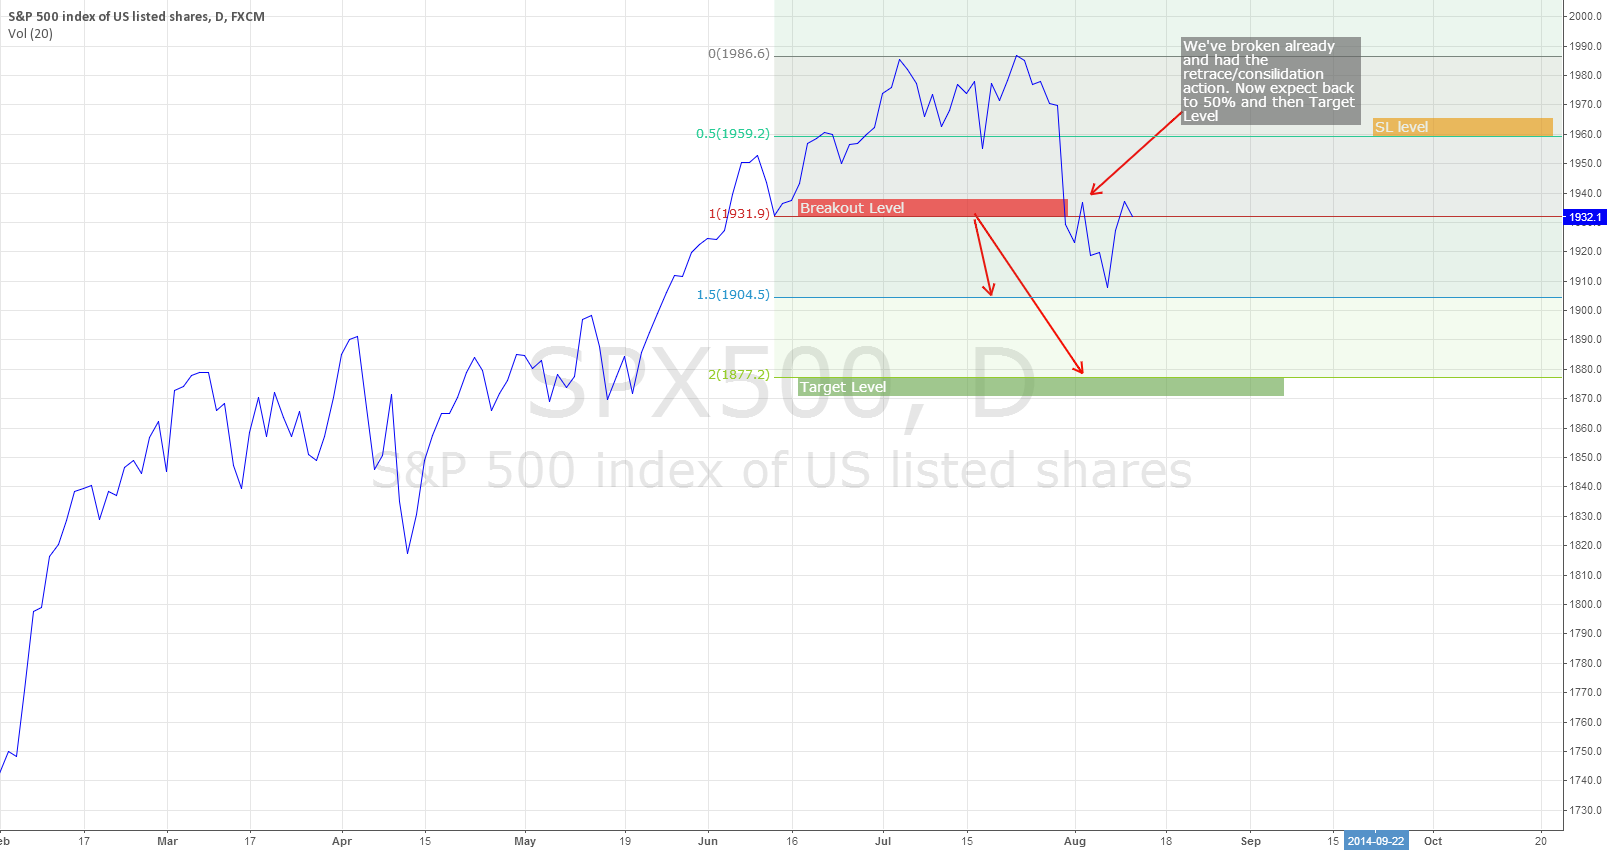 SPX500 on way down to 1877 target after crossing breakout lin